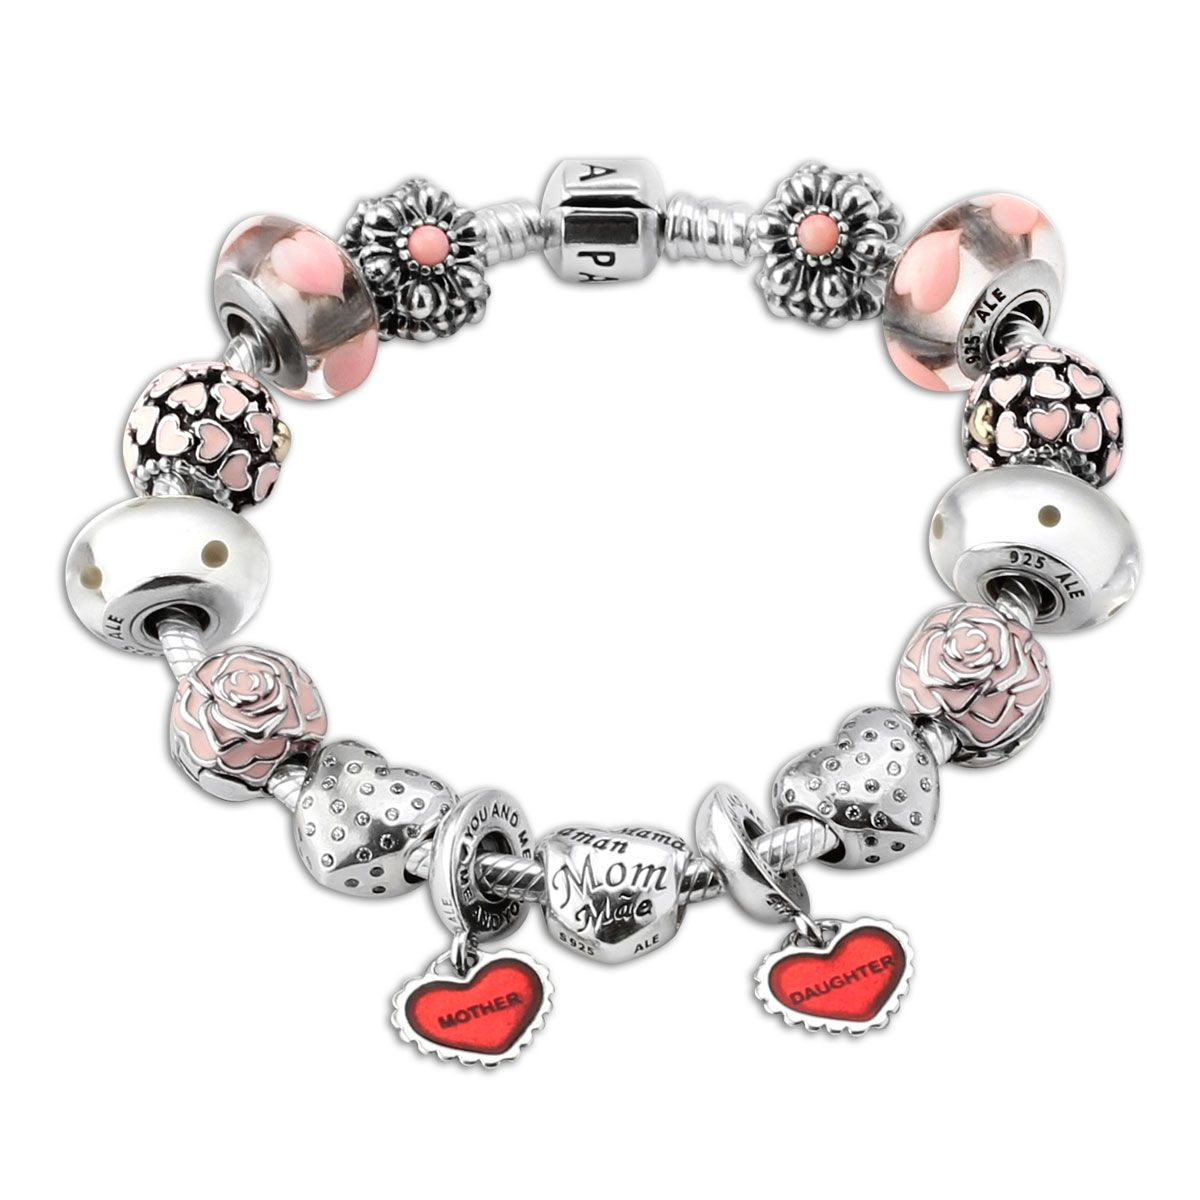 The Pandora Baby Bracelet Features Murano Gl Enamel And Cubic Zirconia In Sterling Silver With A Pink Red Theme This Mother Daughter